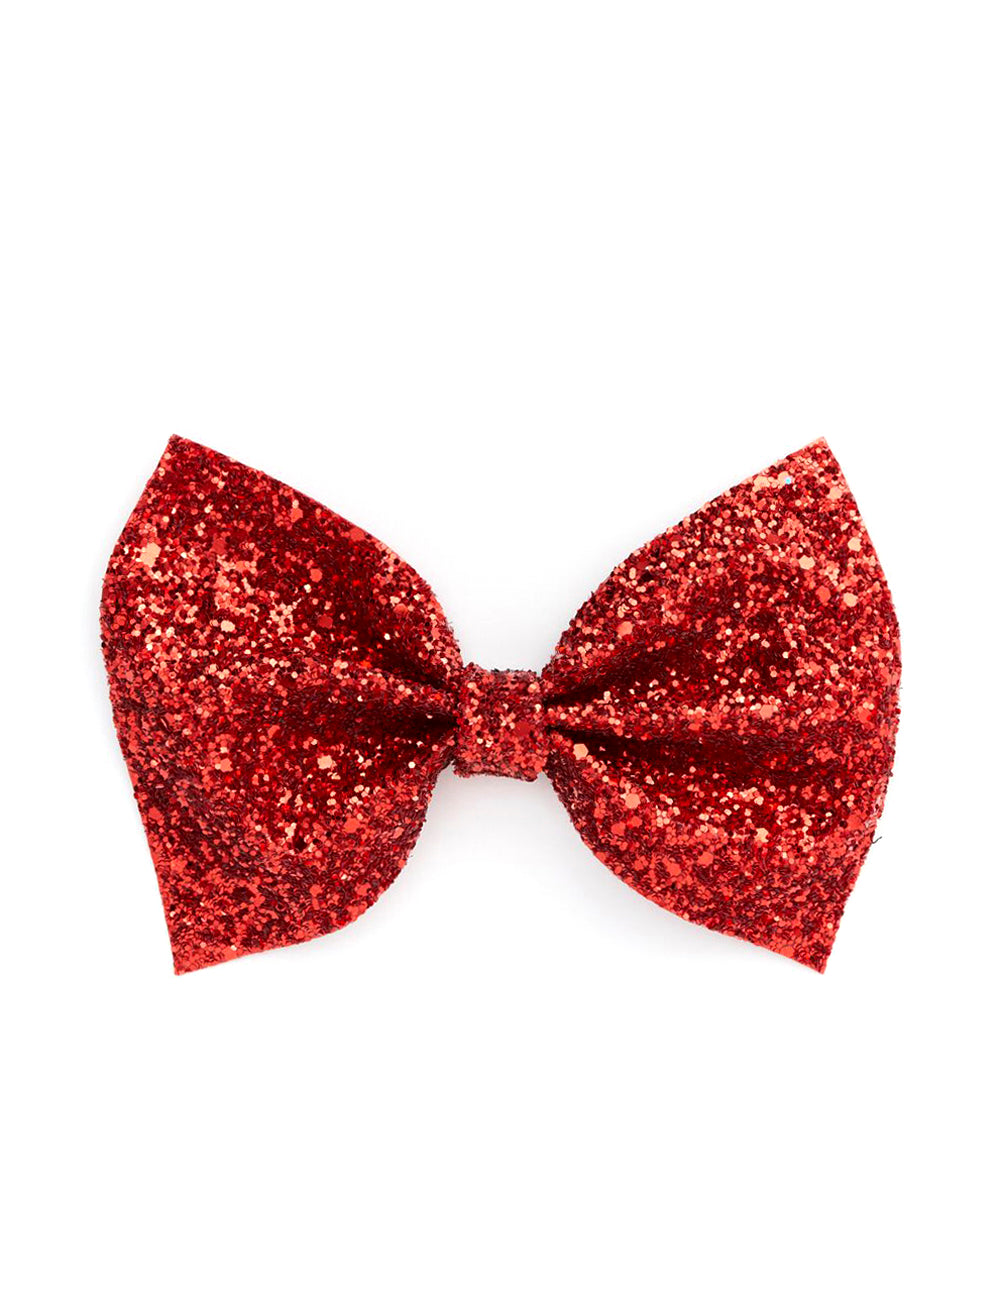 Glitter Bow Tie | Red